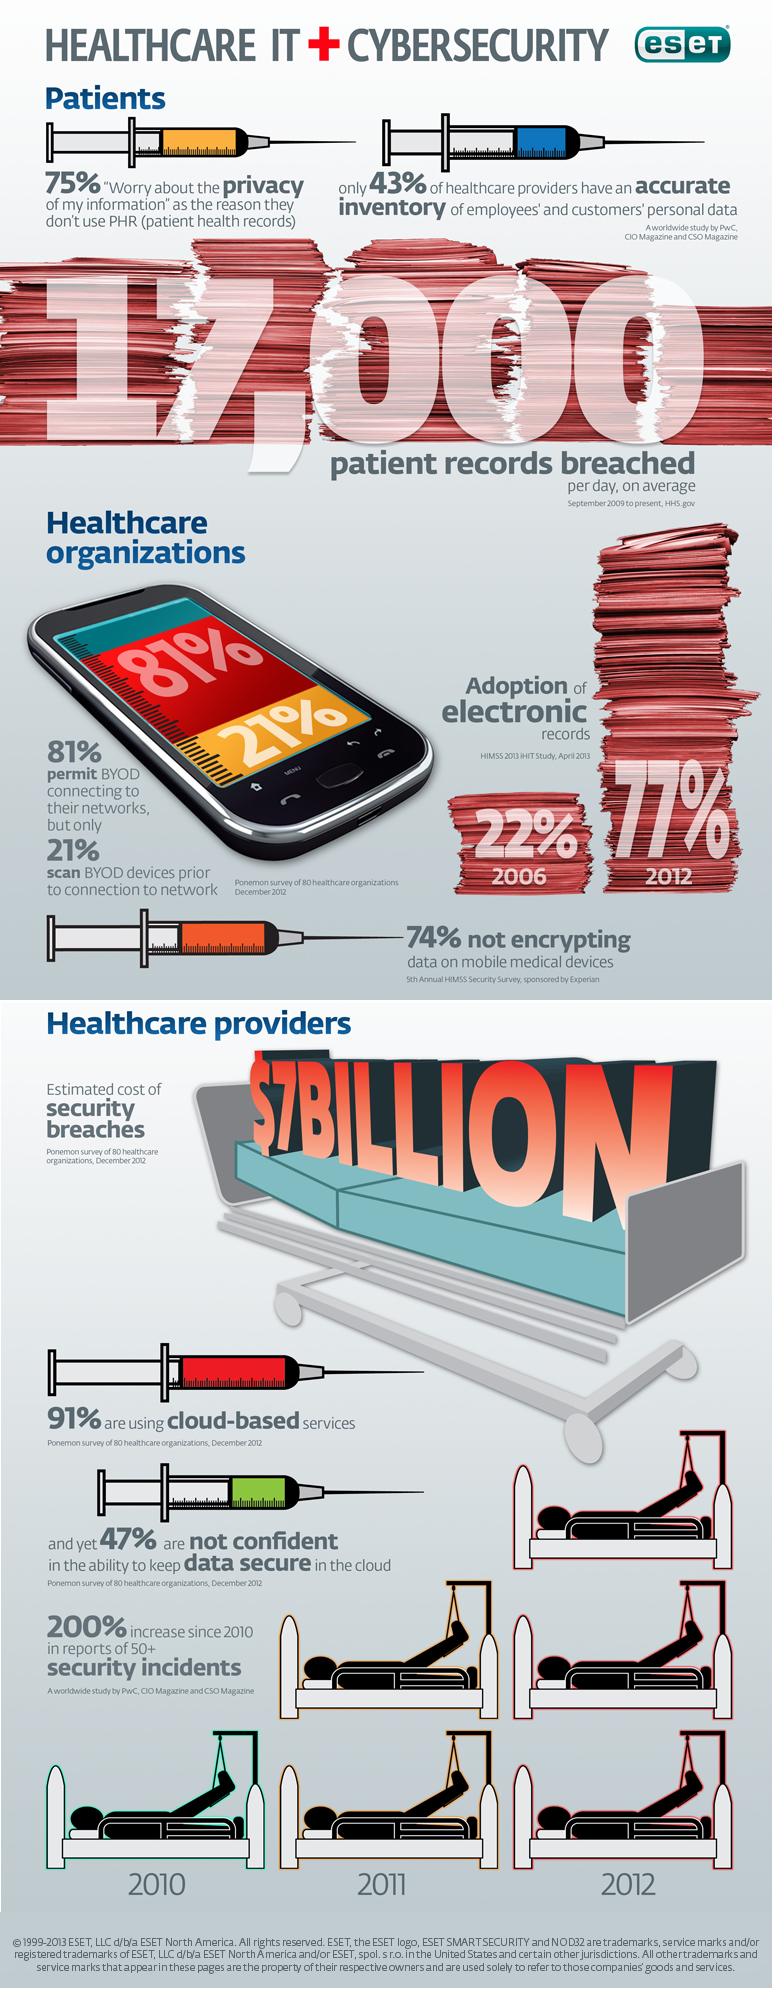 ESET-healthcare-infographic